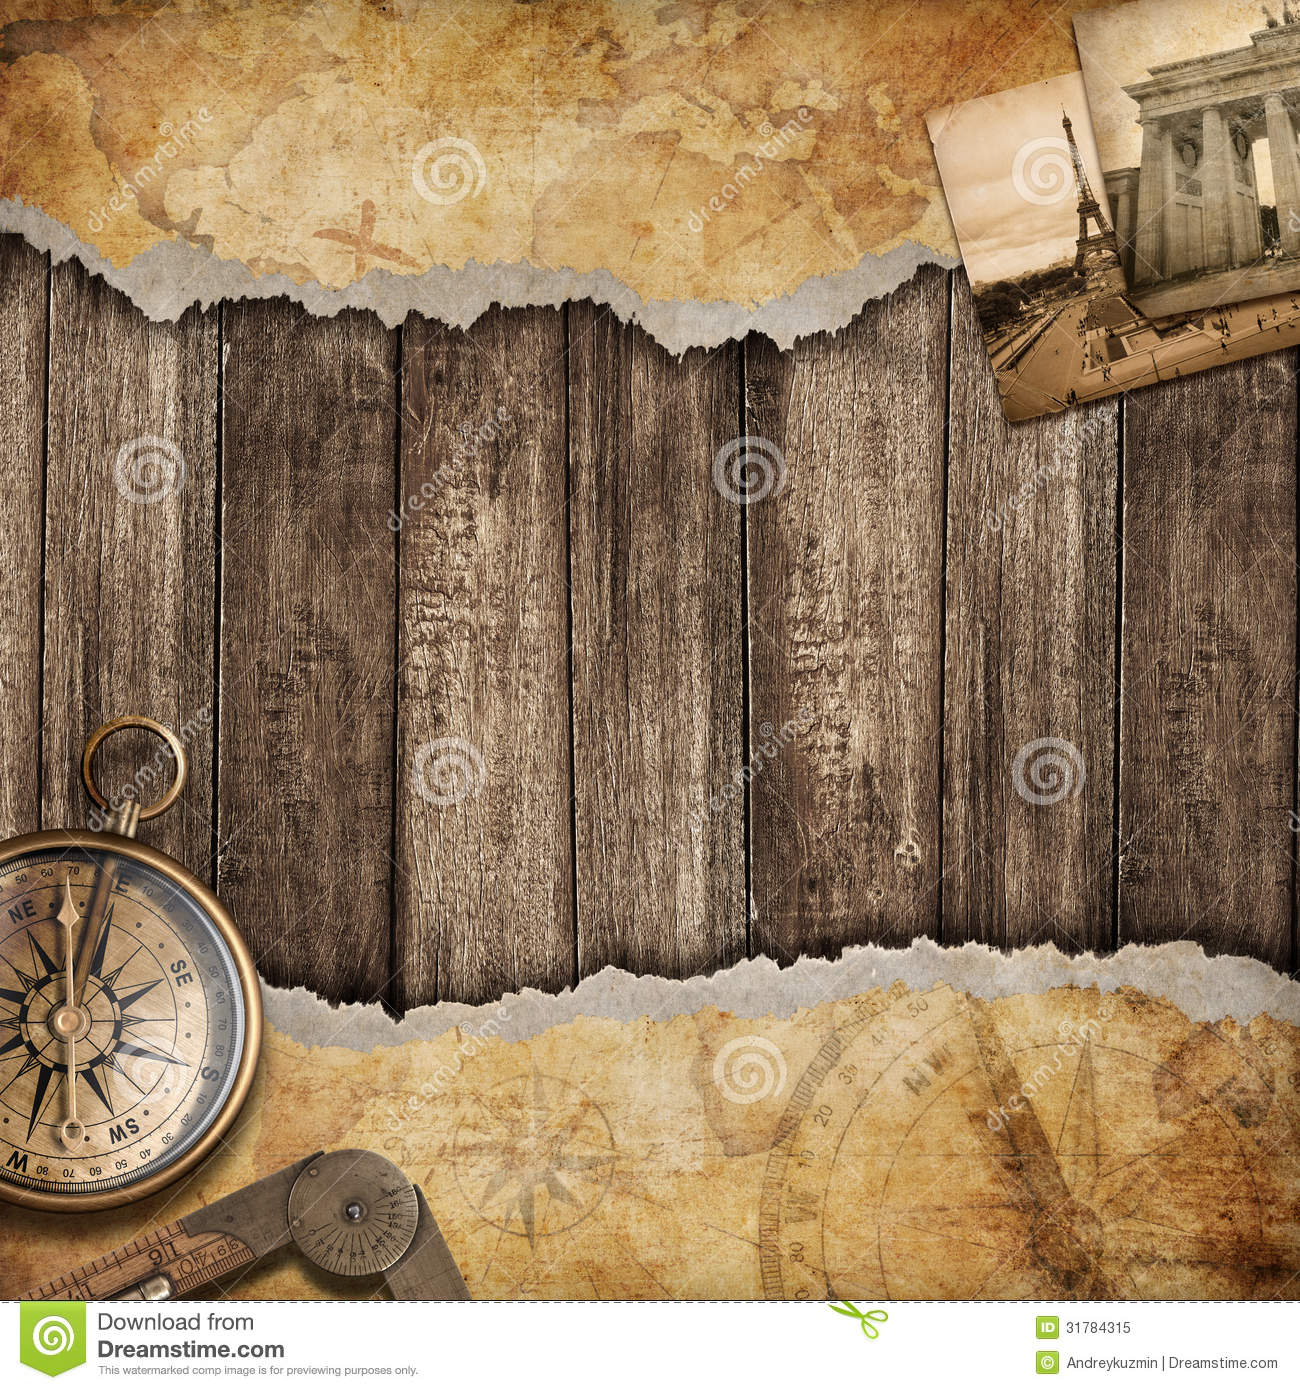 Old map background with compass adventure or discovery concept old map background with compass adventure or discovery concept gumiabroncs Images